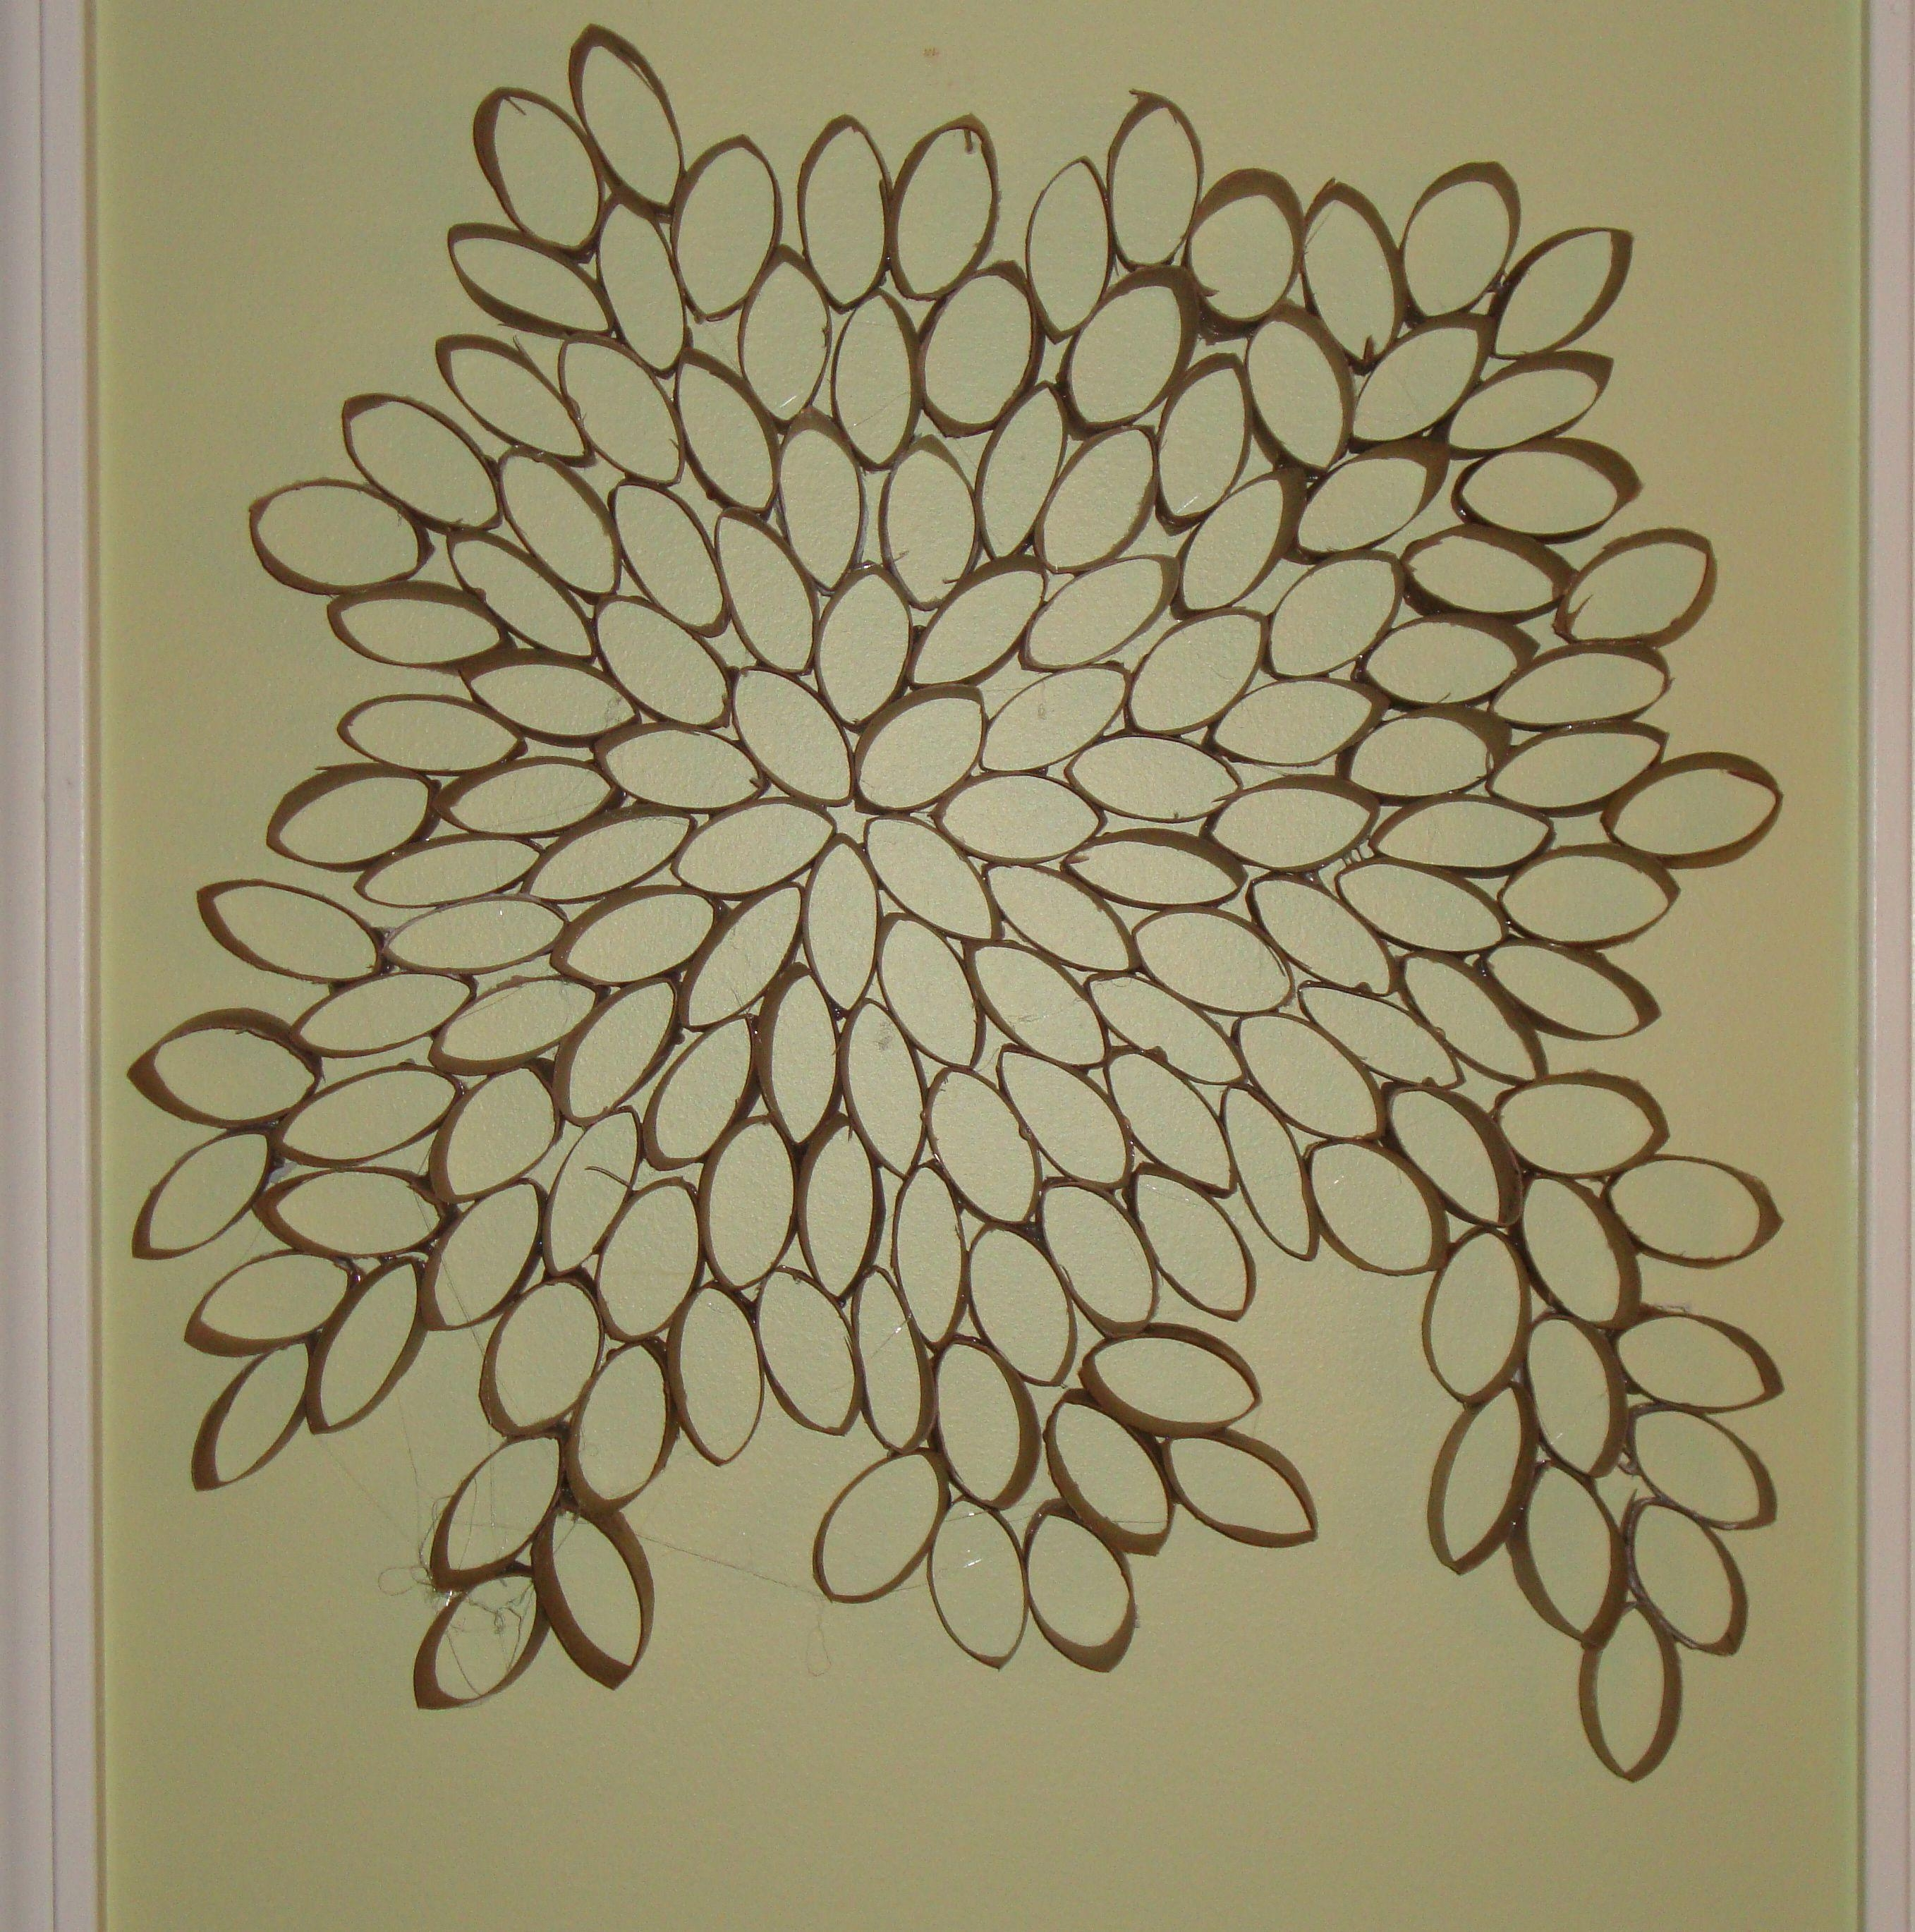 Paper Towel Roll Wall Art Recycled Paper Towel Roll Wall Art Diy Throughout Recycled Wall Art (Image 12 of 20)